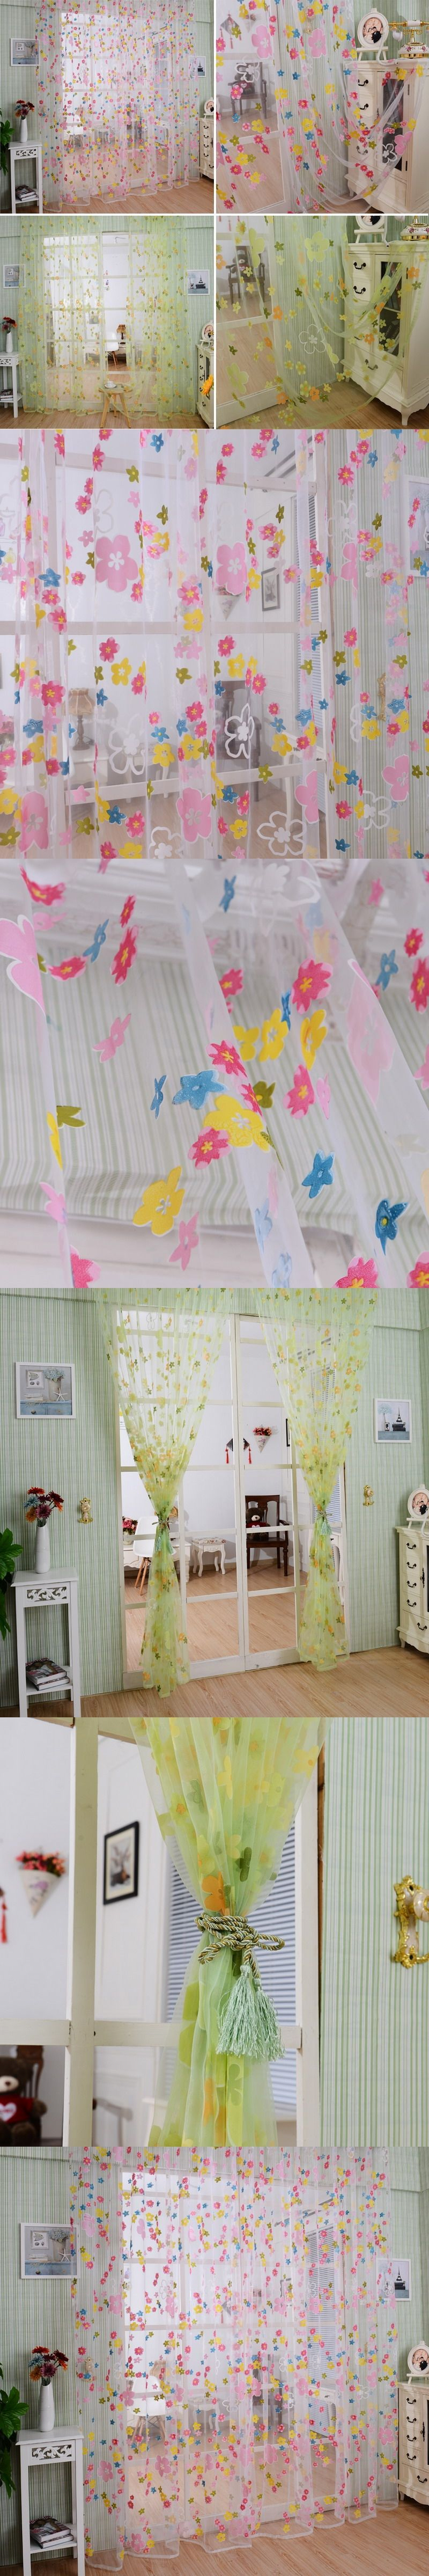 New window coverings 2018  pcs new fashion flower floral door window curtain drape panel scarf